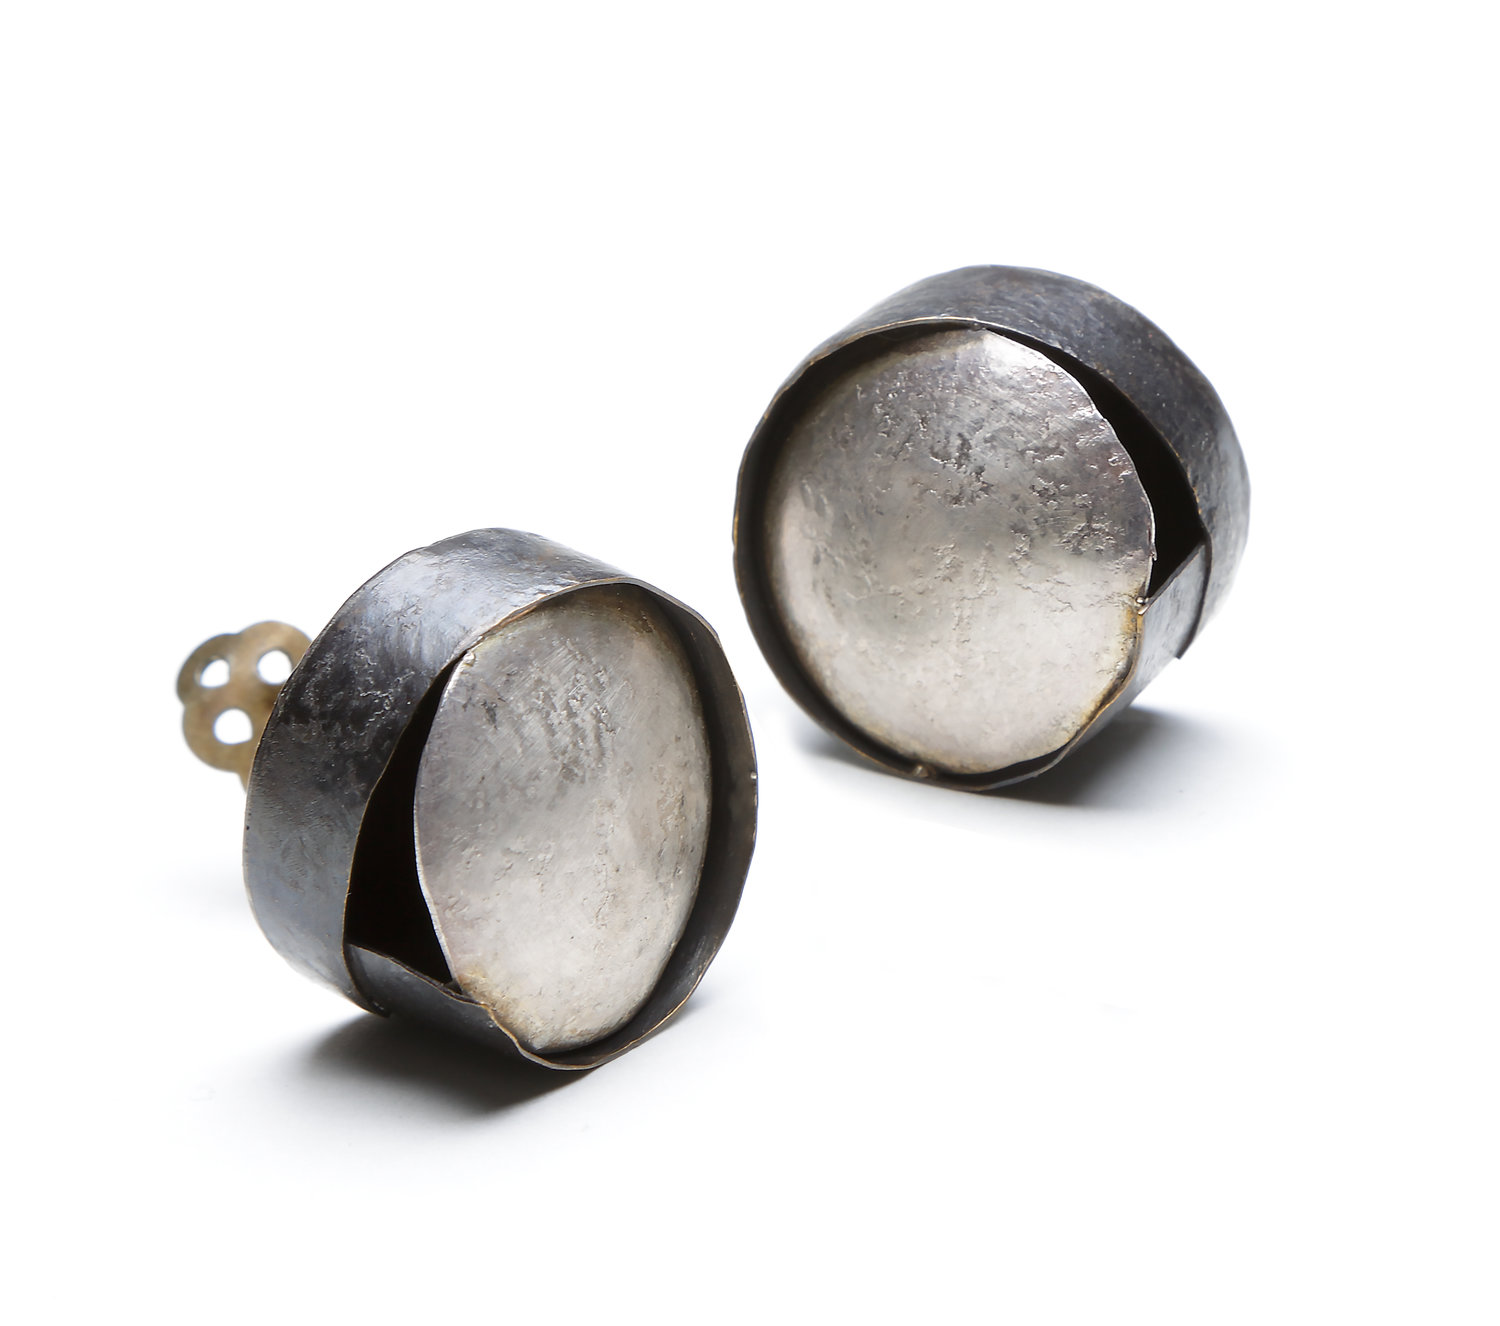 Biba Schutz, Art Jewelry, Earrings, Bronze, Silver, Studs, Circles Sherrie Gallerie